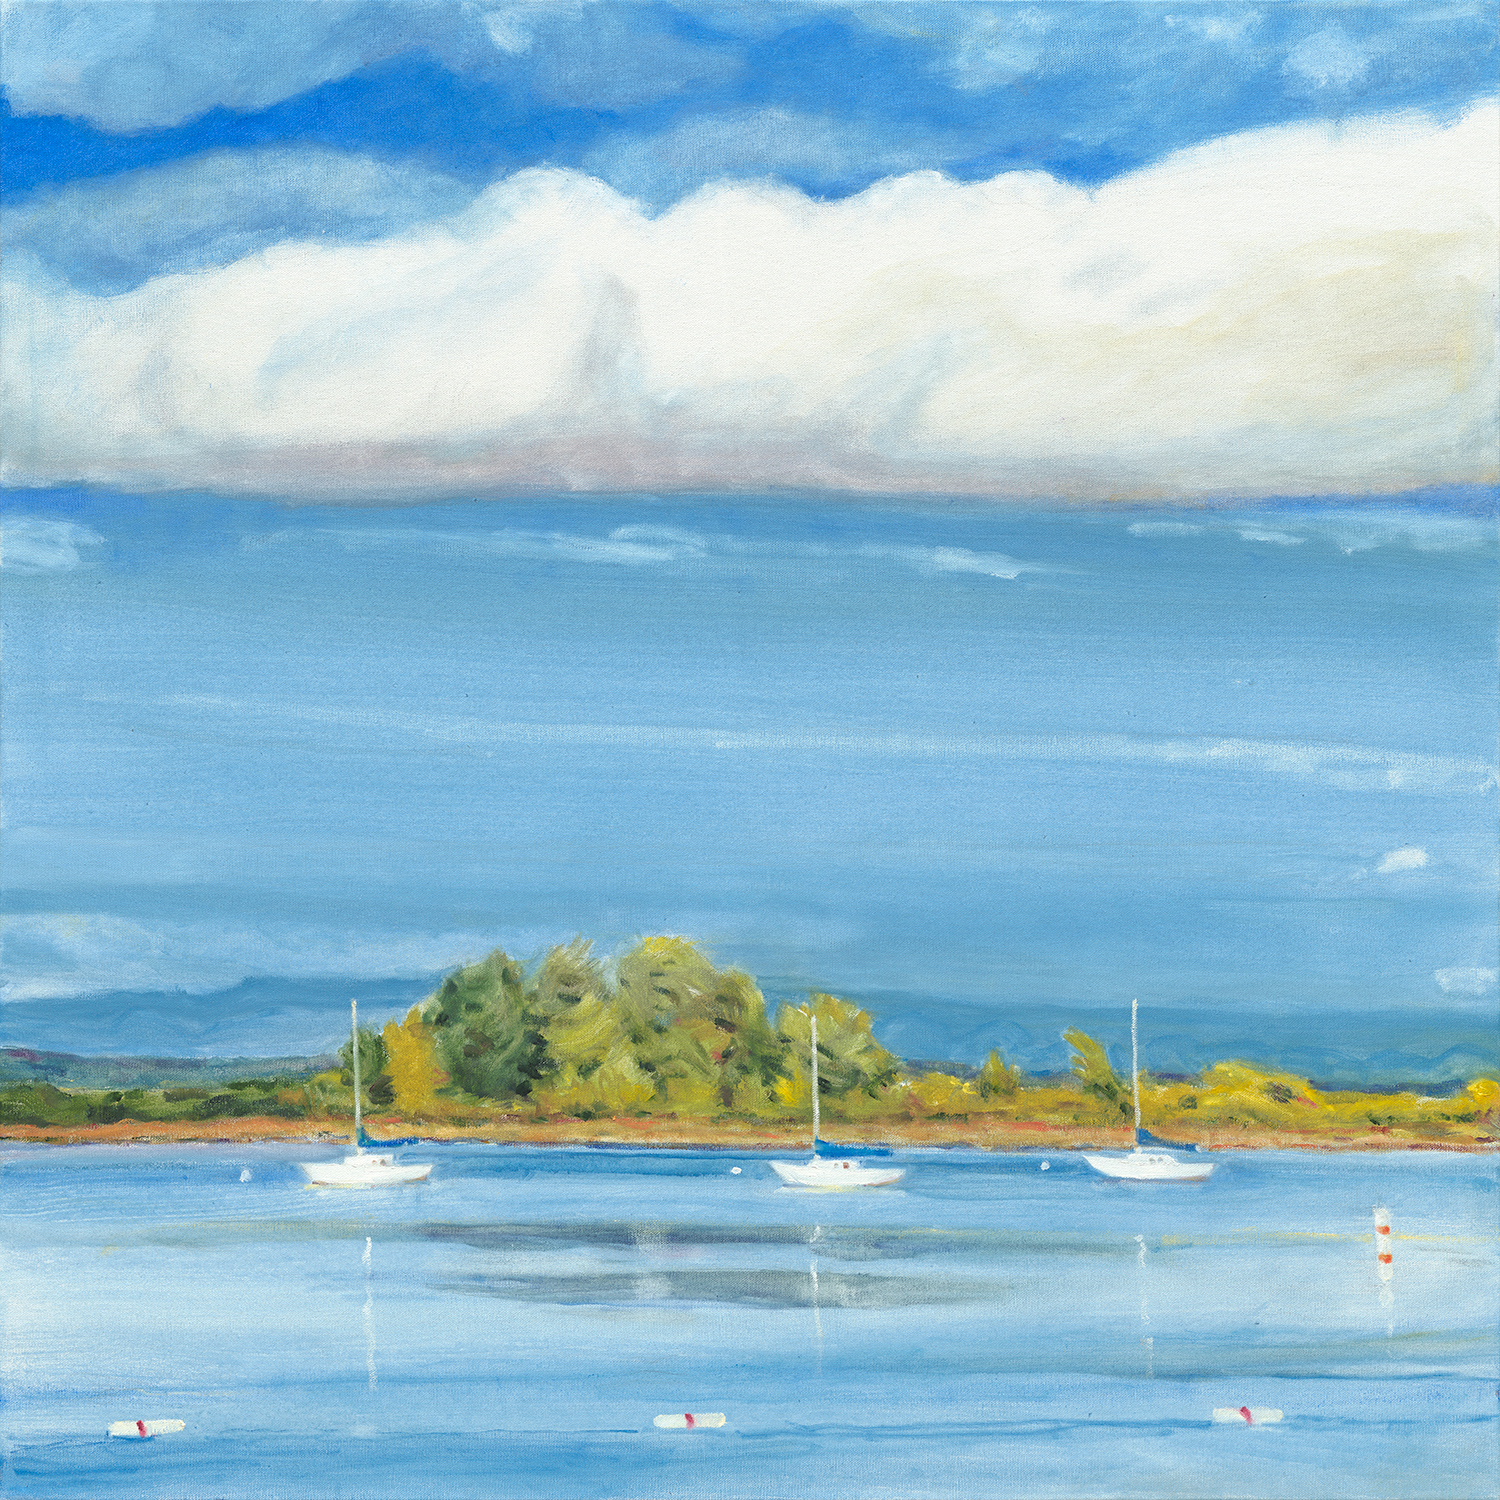 "Three White Sailboats 36 x 36"" Aqua Oil"